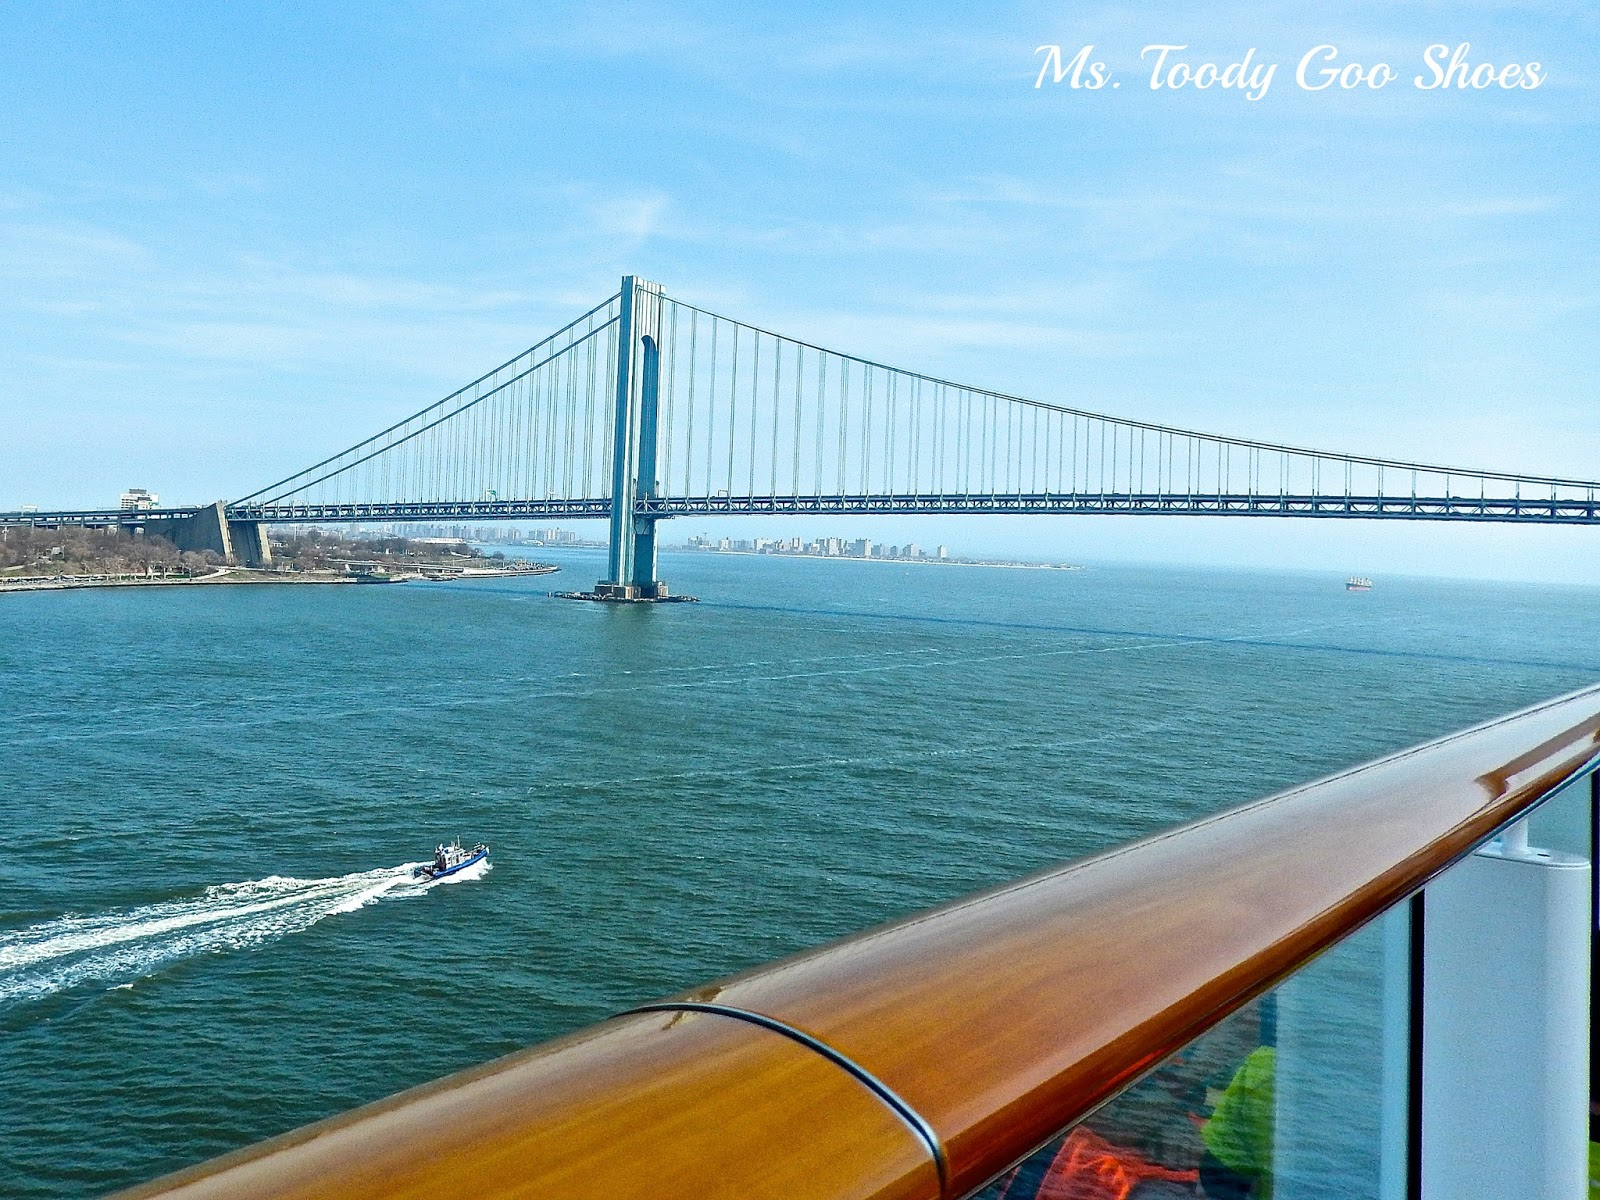 Verrazano Bridge from Norwegian Breakaway Cruise Ship  --- Ms. Toody Goo Shoes